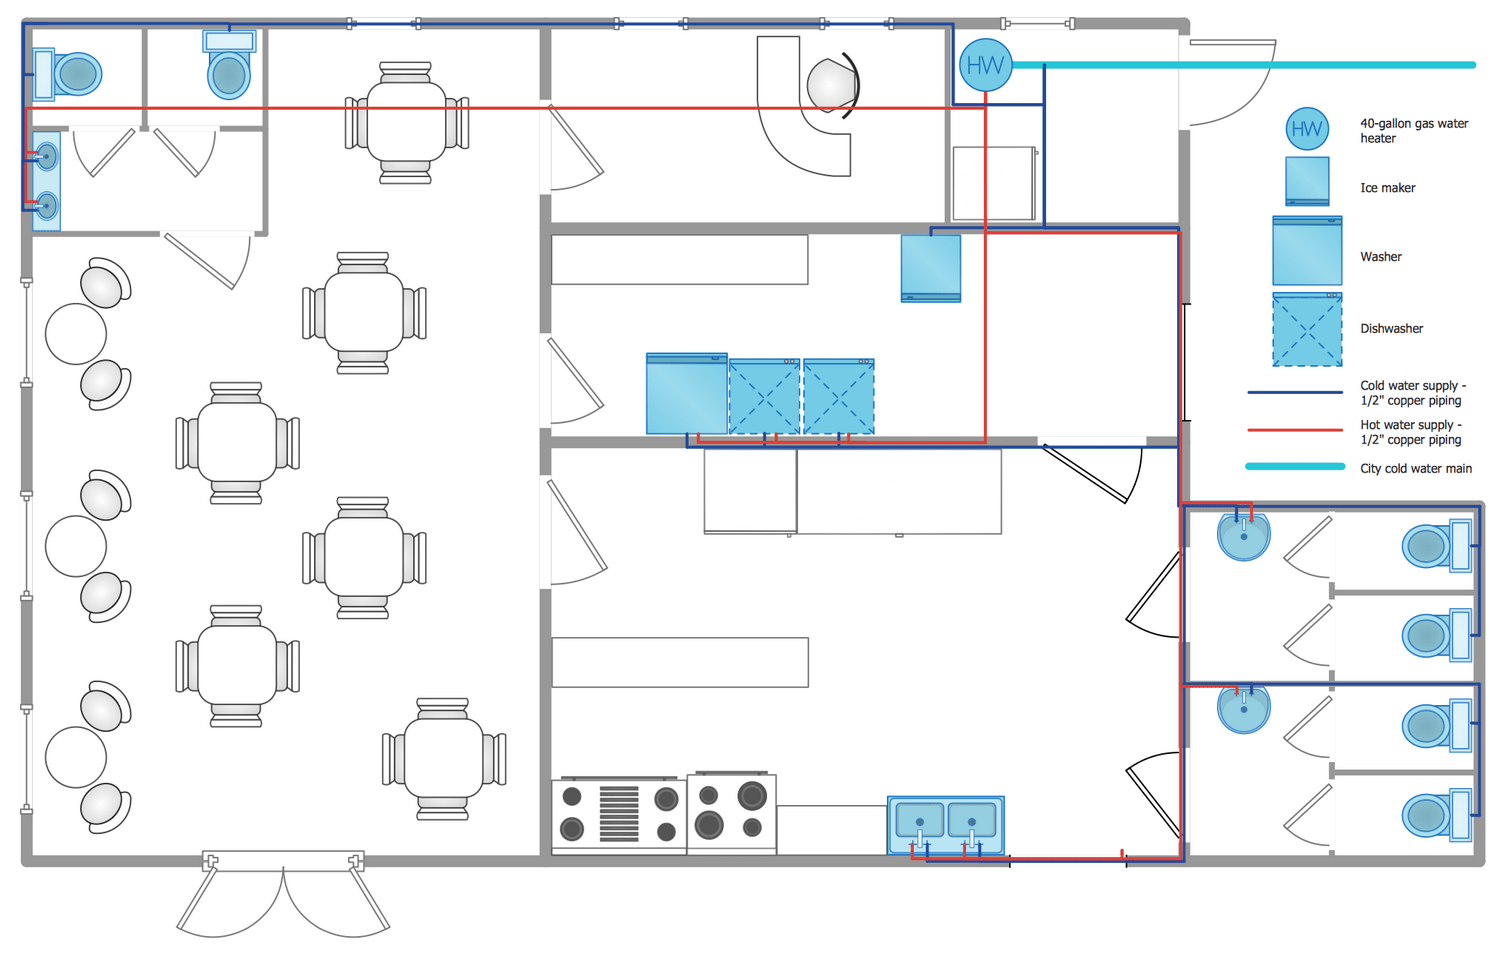 hight resolution of plumbing and piping plans solution conceptdraw com plumbing a house plumbing diagram examples